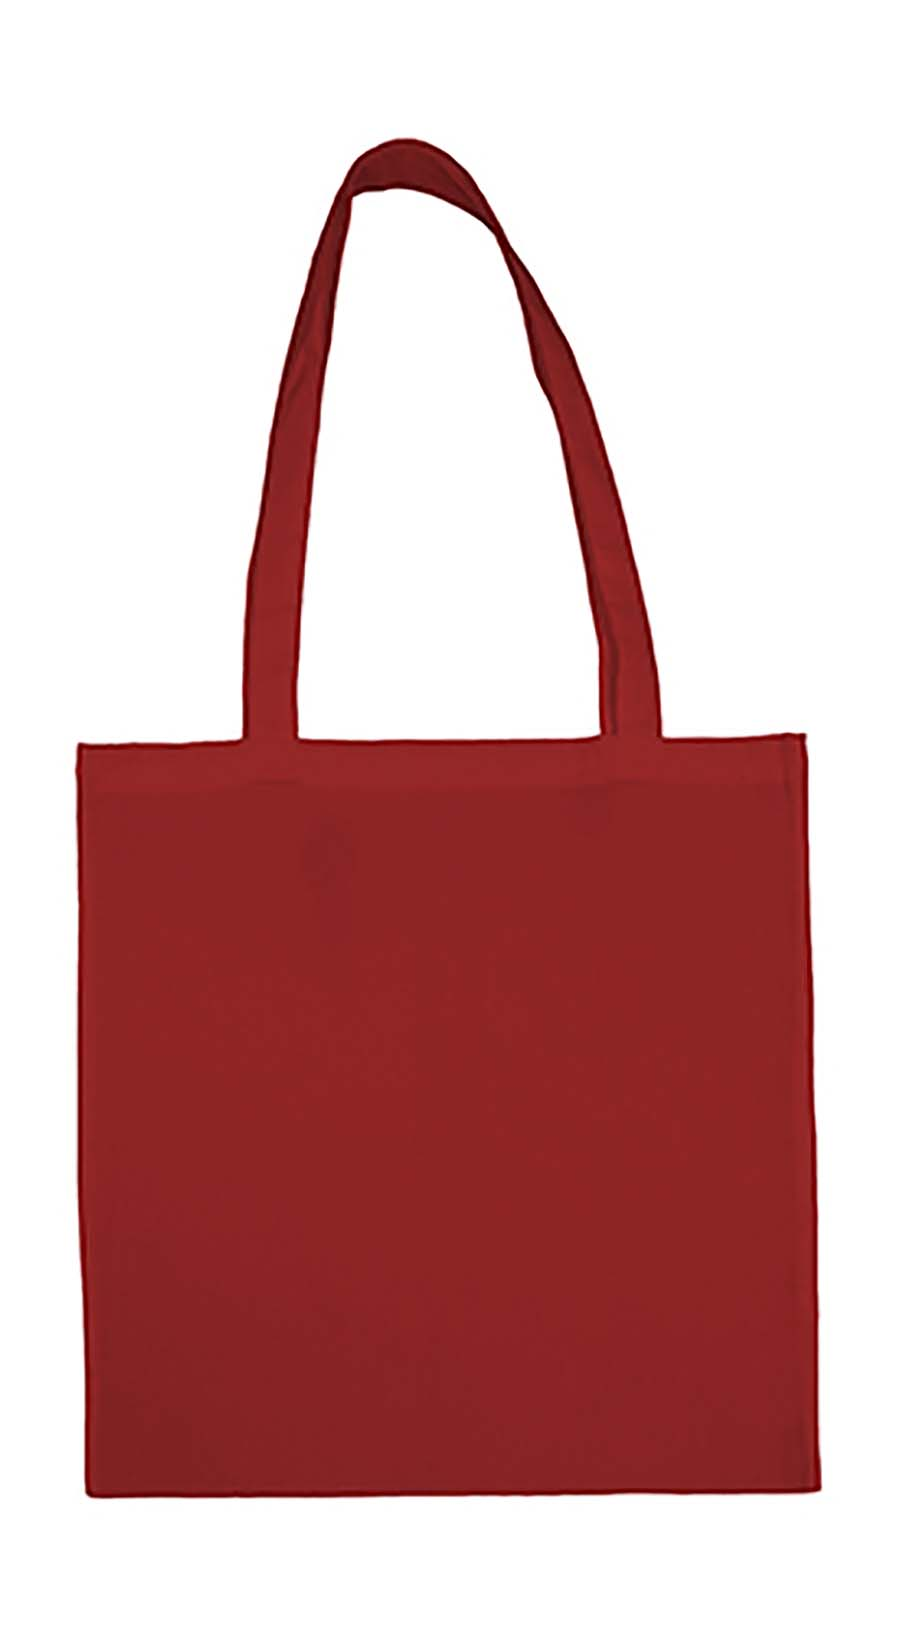 Sac shopping 50 couleurs - 15-1043-52